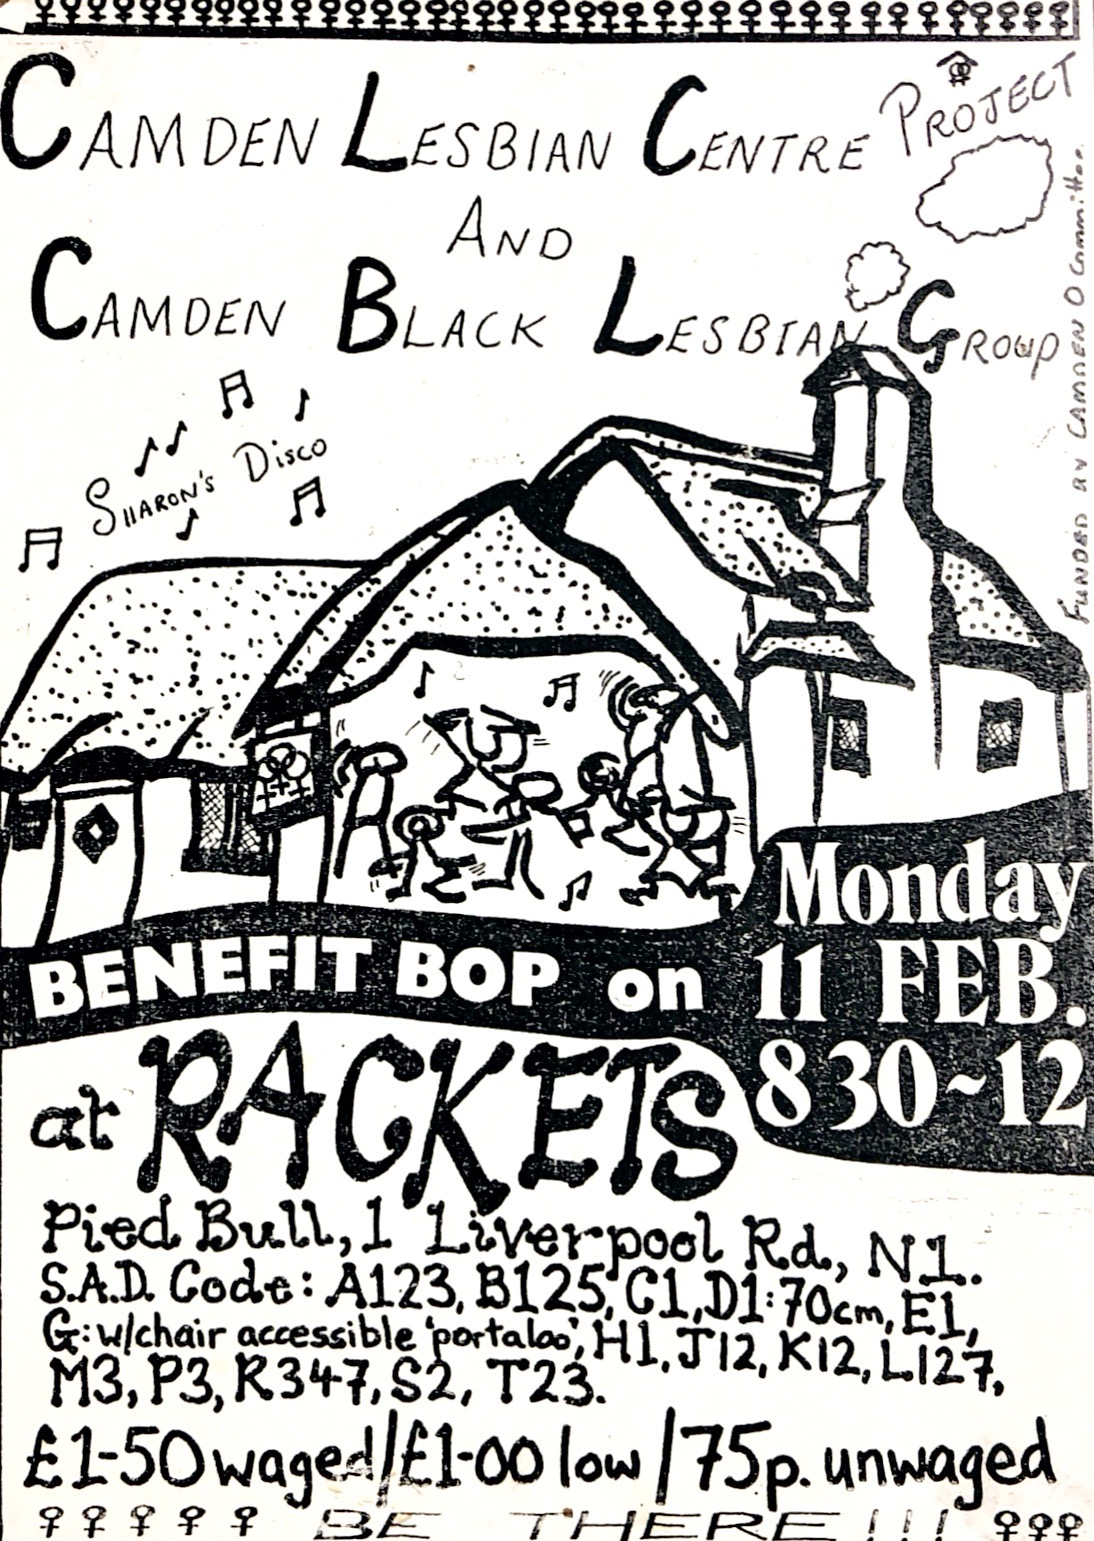 Poster for CLC&BLG benefit bop at Rackets lesbian disco at teh Pied bull on Liverpool Road, London. Features an illustration of a pub (the venue) with stick figures dancing in the foreground and musical notes floating around them. An annotation says 'Sharon's Disco', referring to one of the CLCBLG organisers who also ran Rackets.